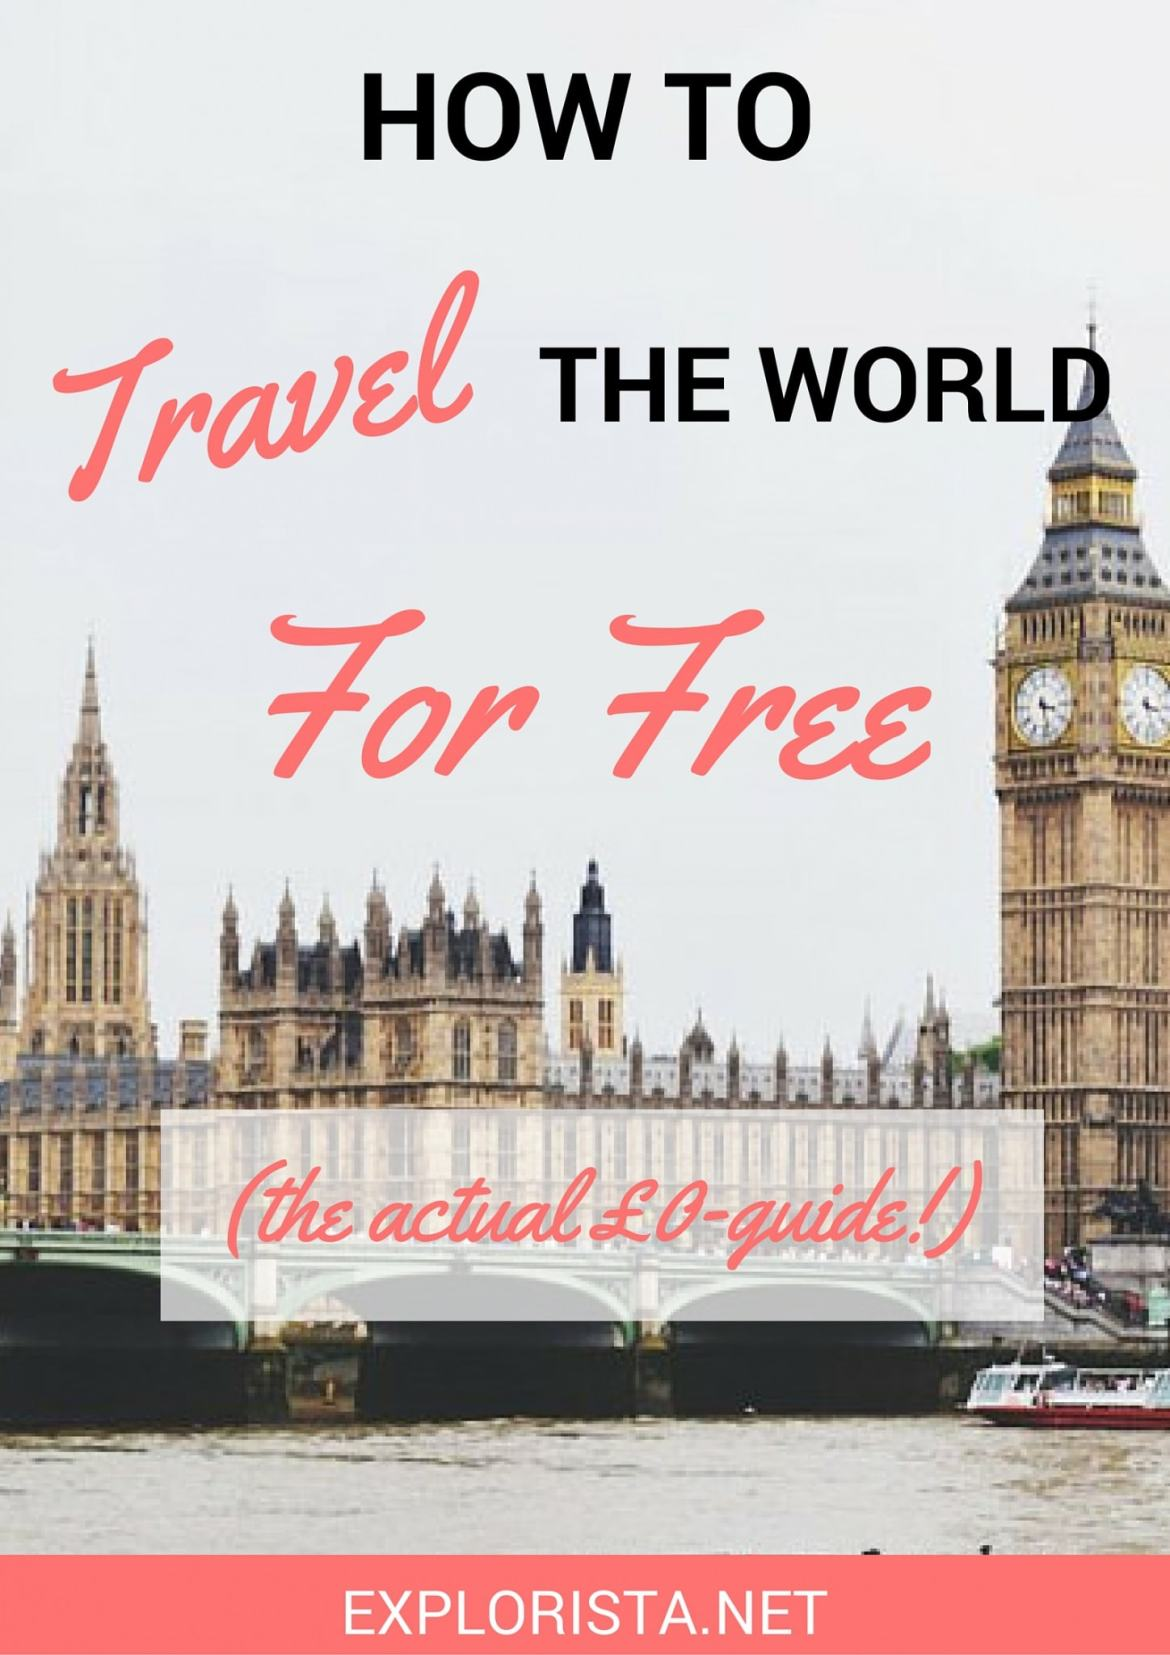 How to travel for free (the actual £0-guide)